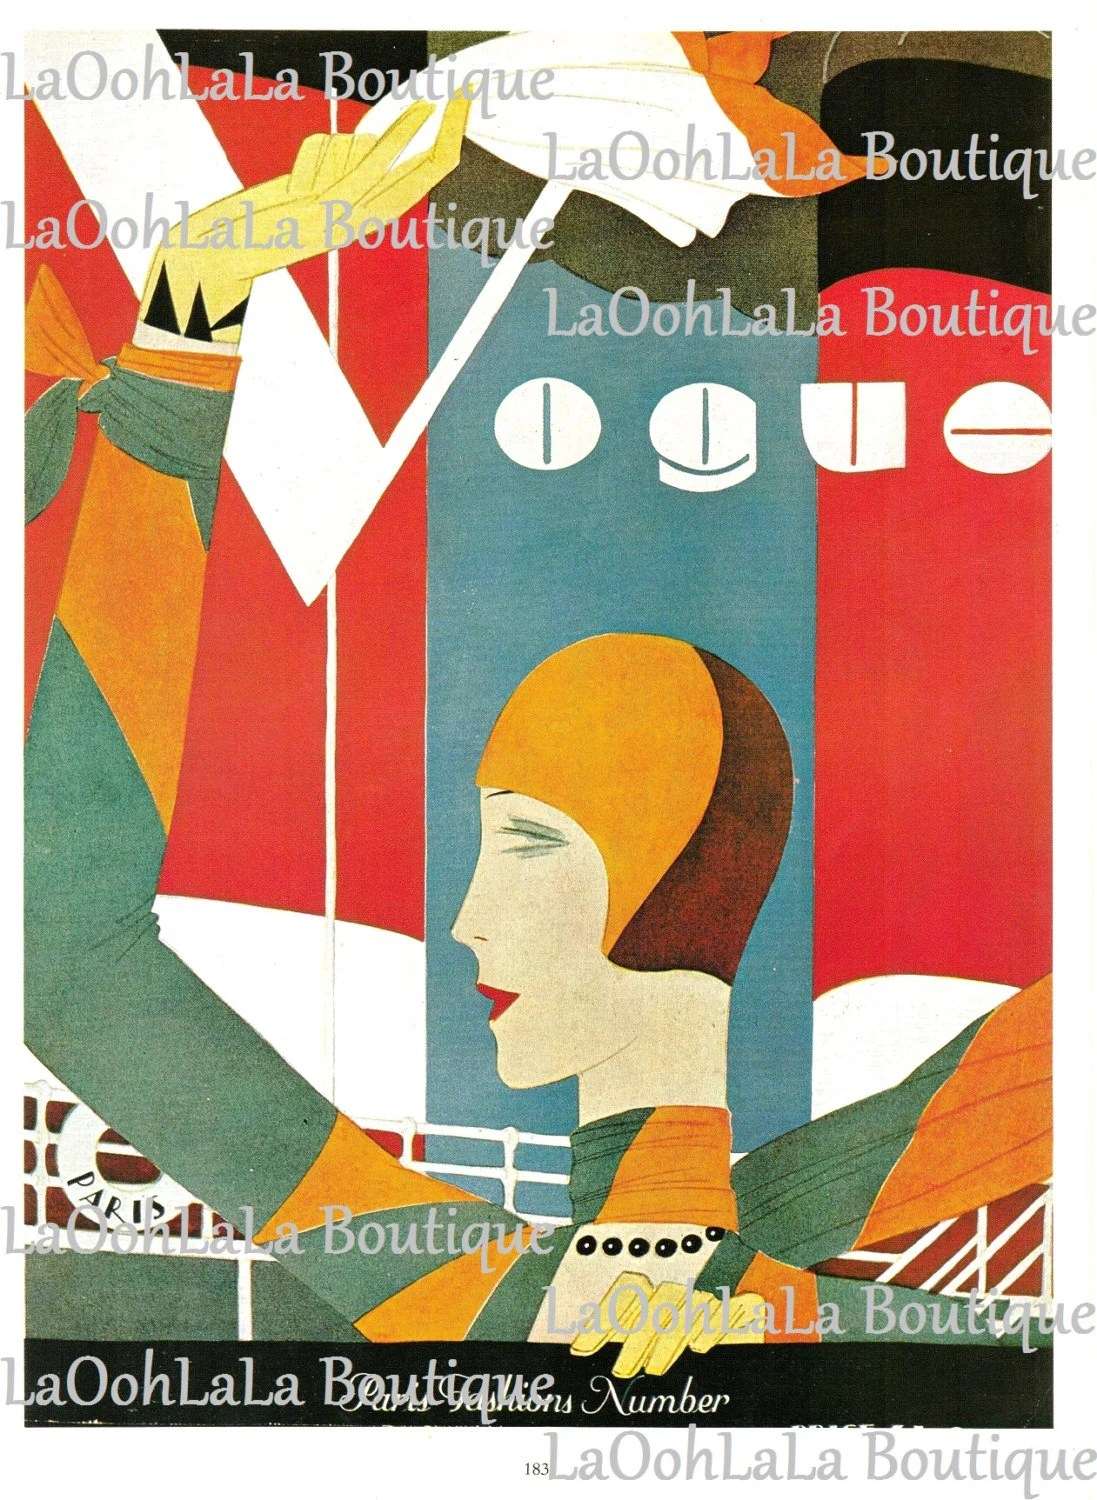 Boutique Deco Paris 1927 Bonjour Paris Vogue Cover Vintage 1980 Druck Französische Mode Eduardo Benito Art Deco Fähre Boot Flapper Cloche Hut Millinery Wand Dekor